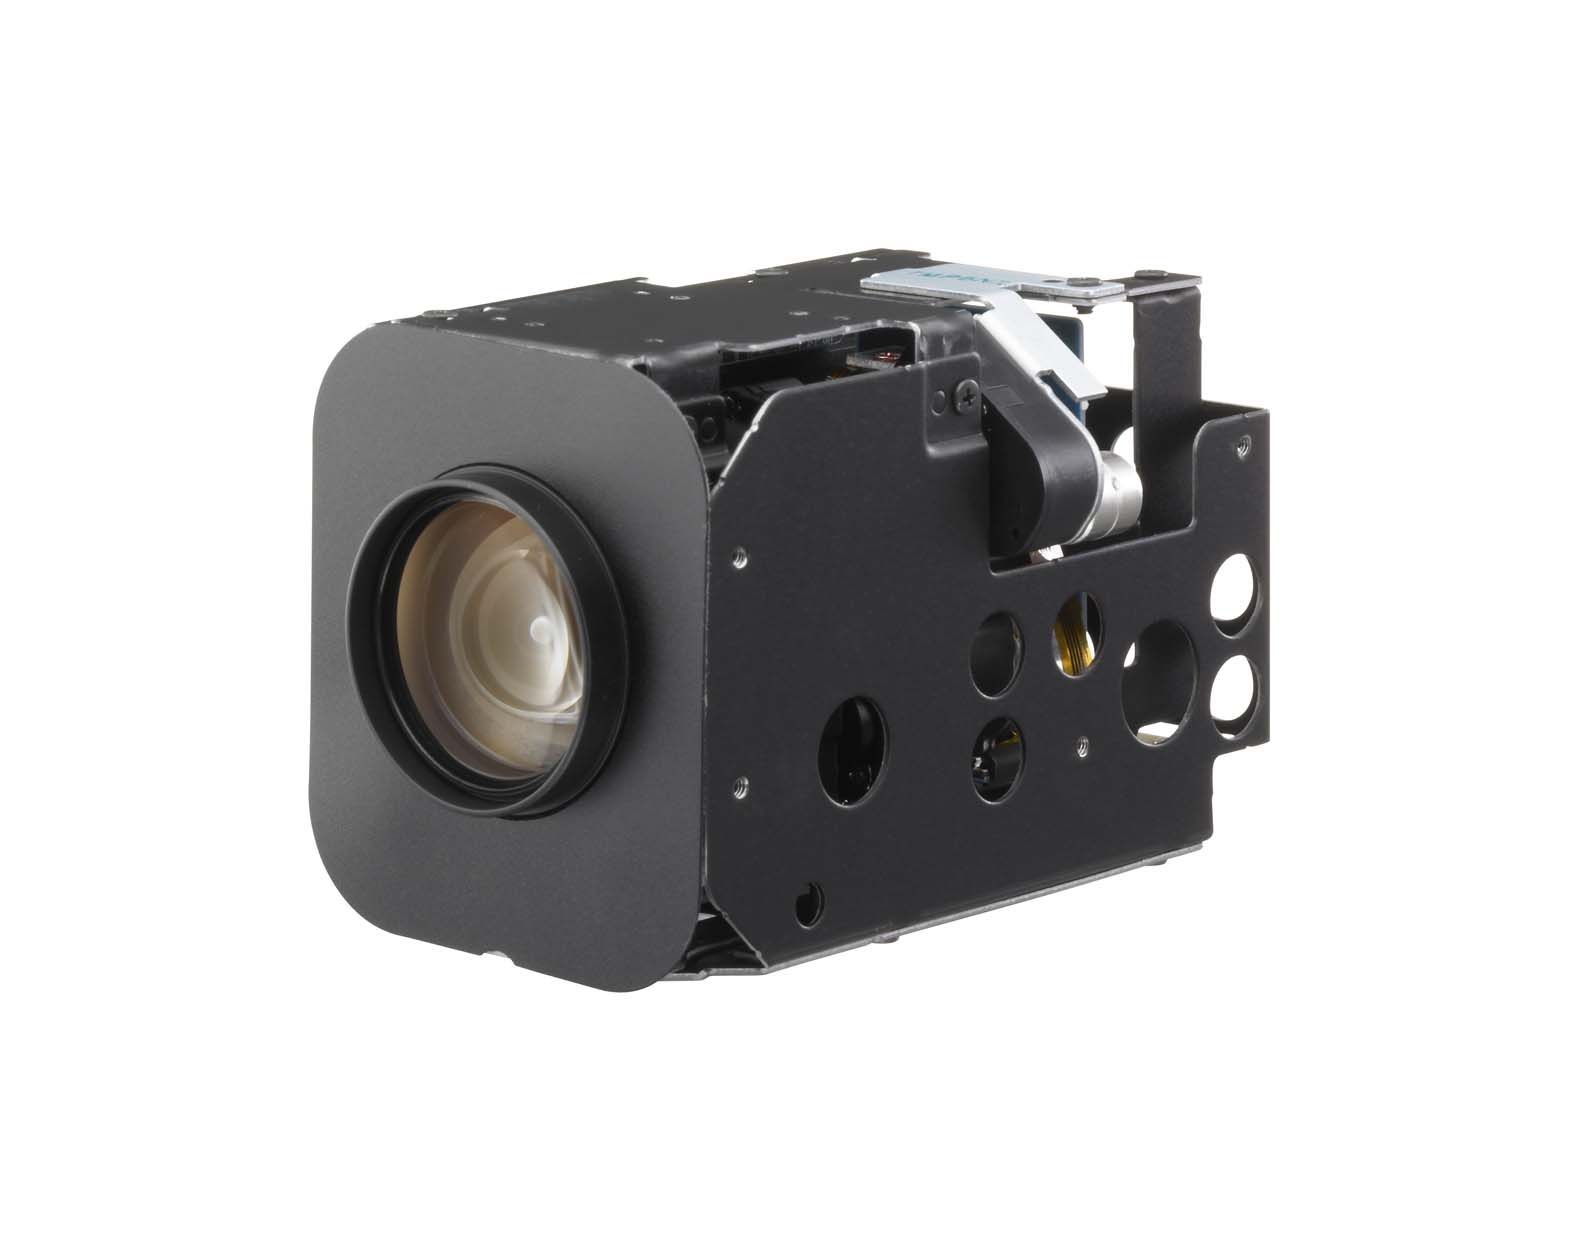 Sony FCB-EX990DP Color CCD Camera